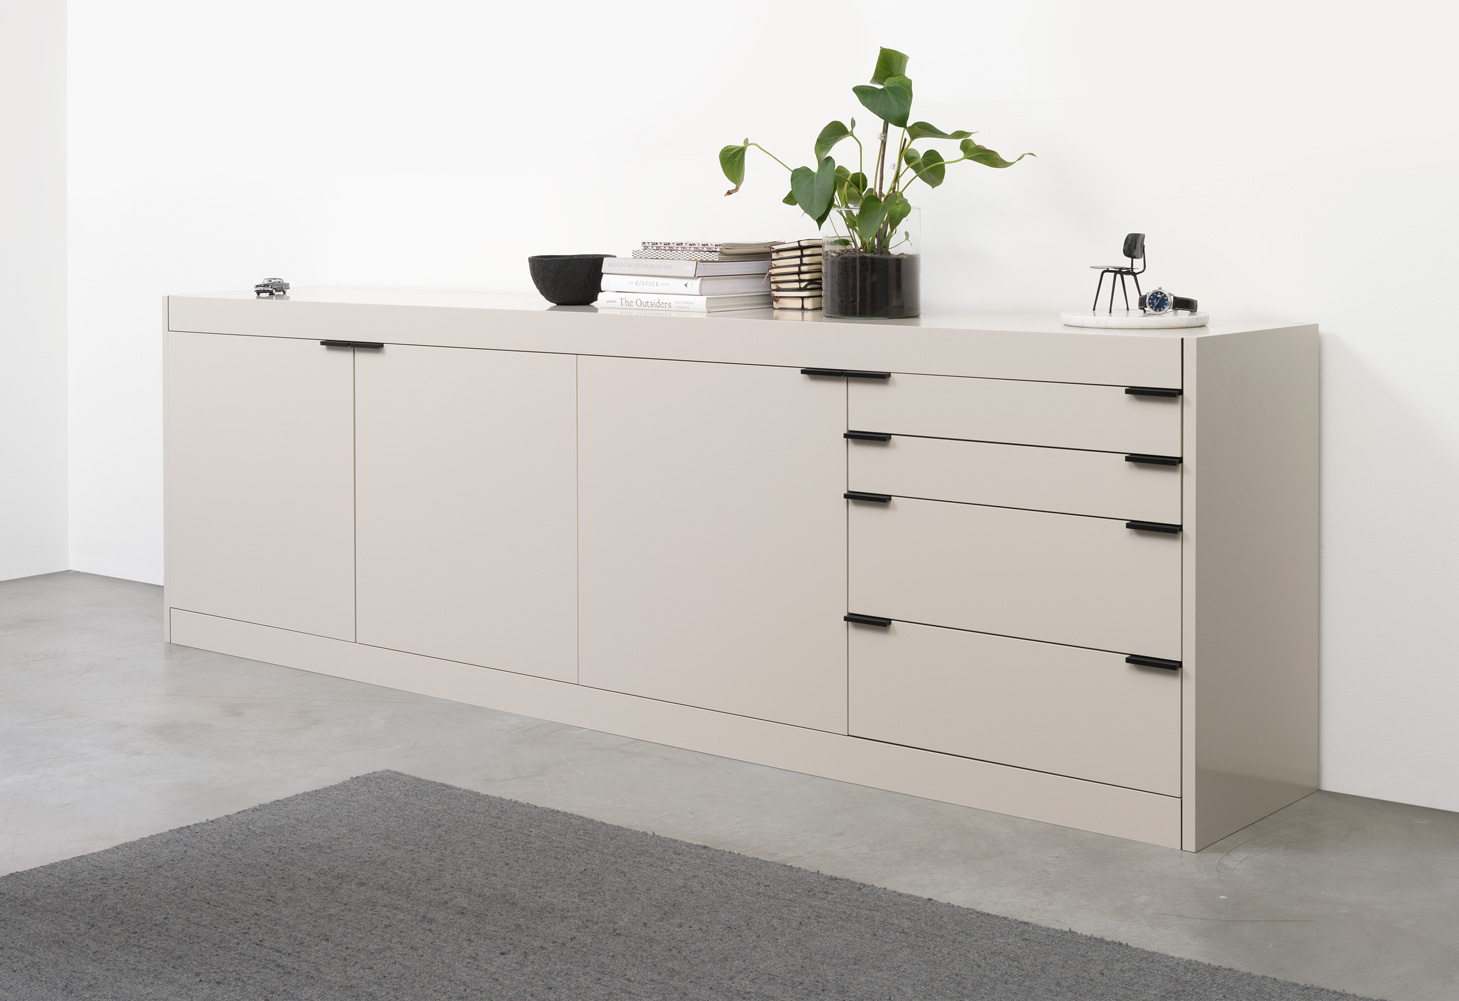 Product Image L-SERIE cabinet